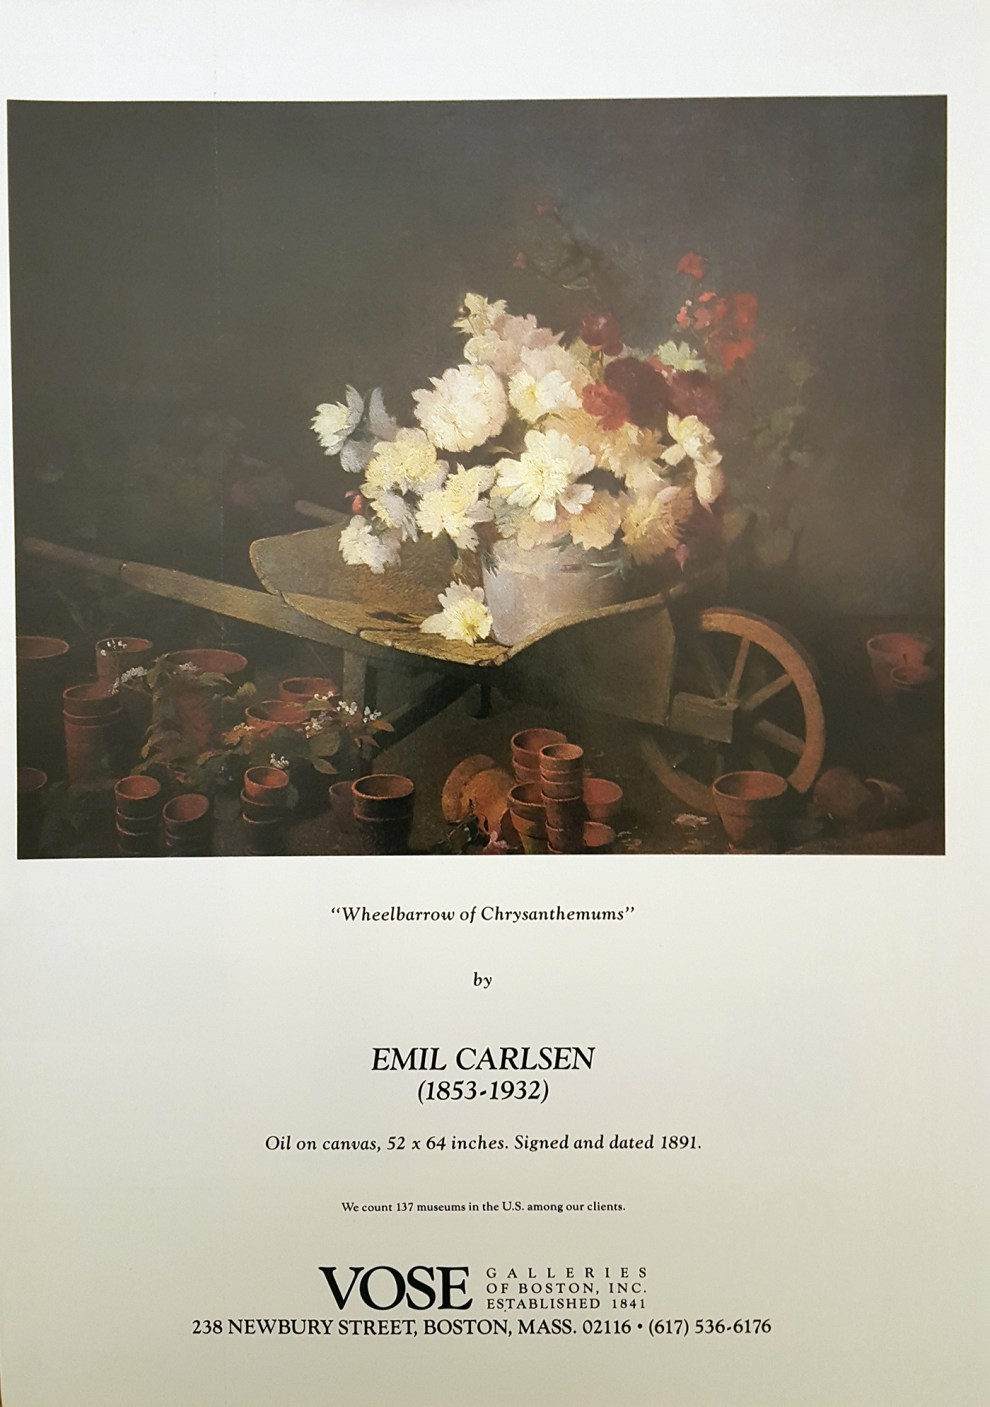 """Emil Carlsen Magazine Ad for Vose Galleries of Boston"", unknown magazine ad, 1984, illustrated: color"